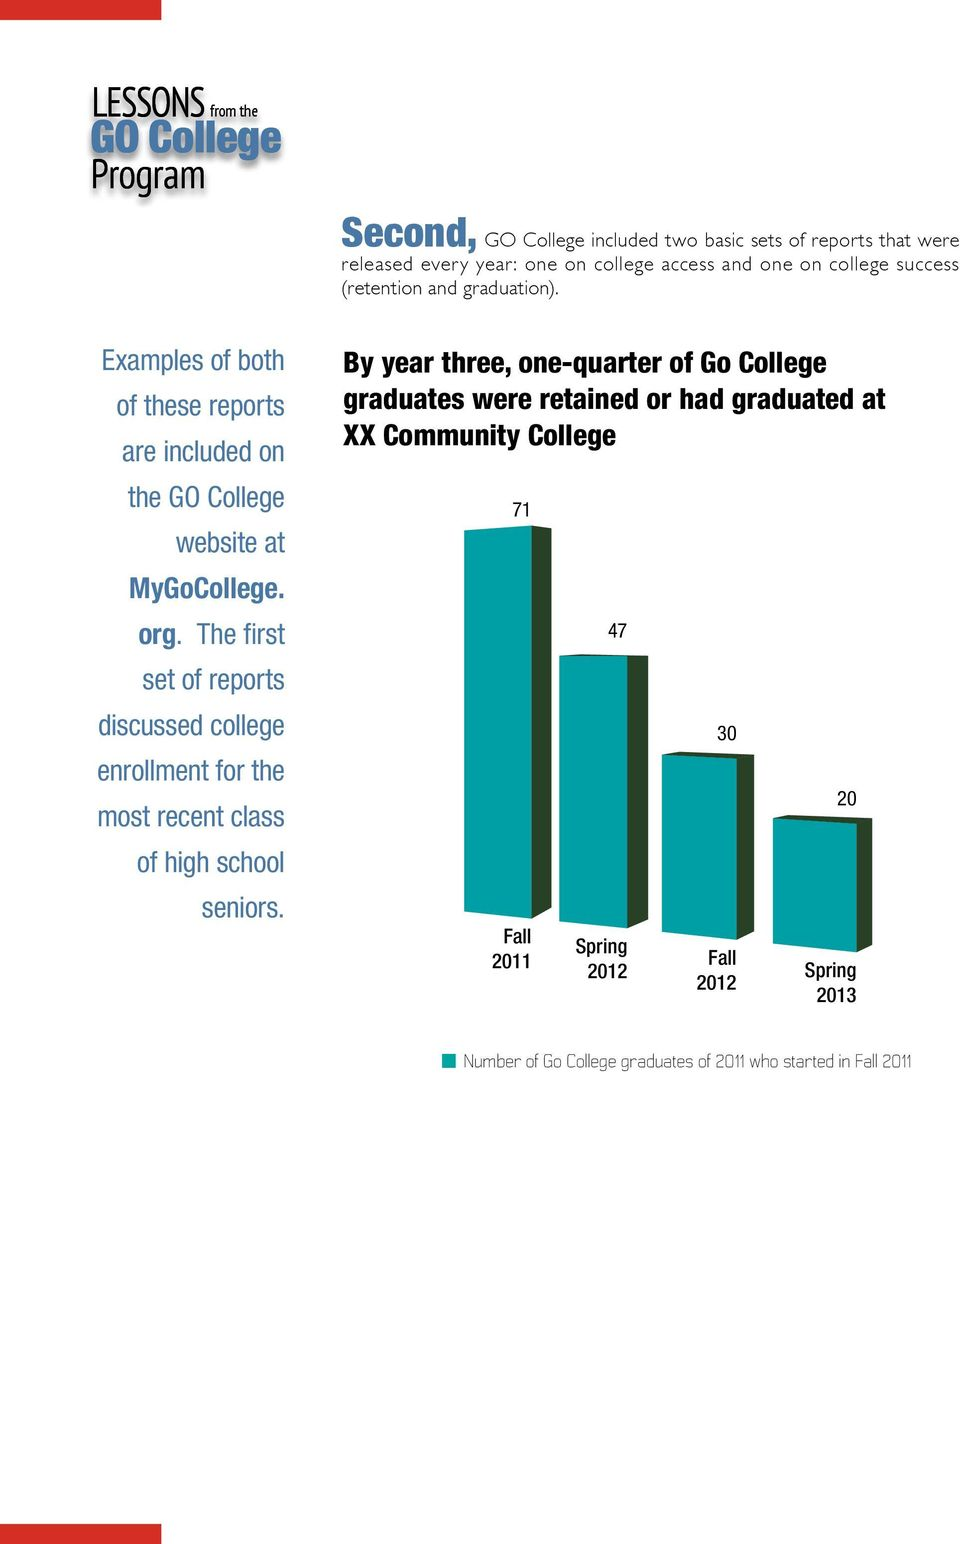 The first set of reports discussed college enrollment for the most recent class of high school seniors.